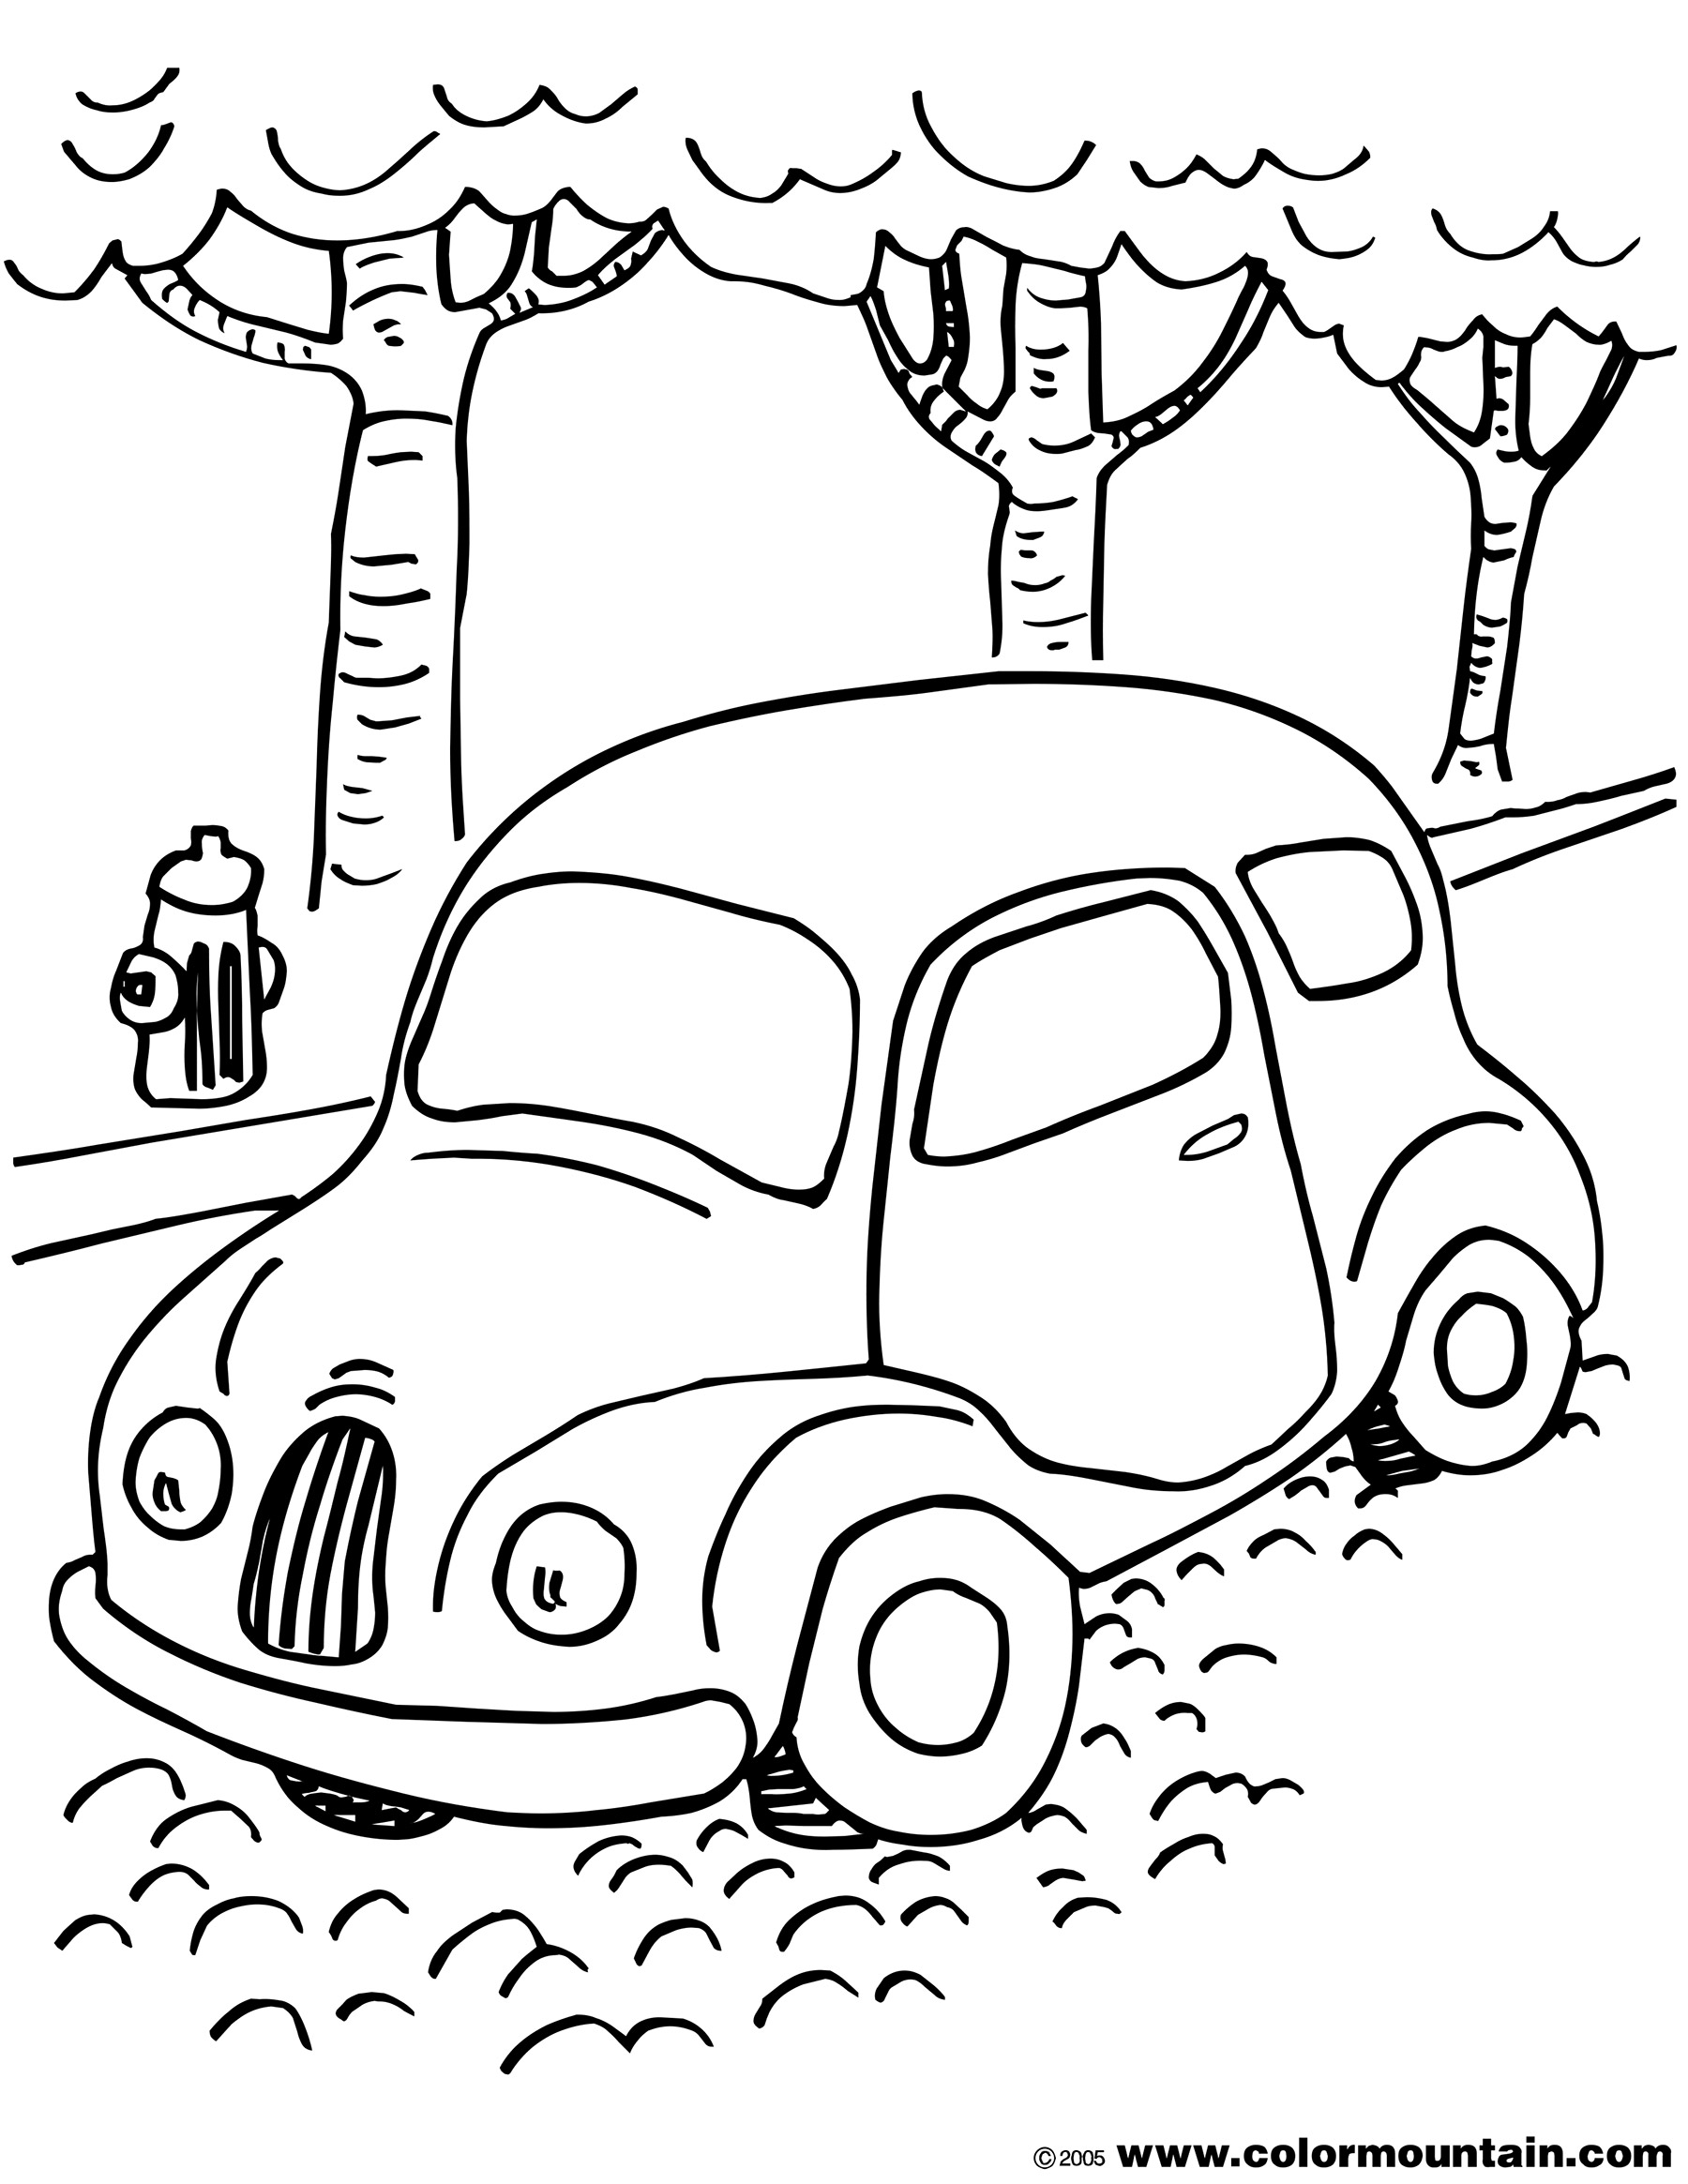 Volkswagen Coloring Pages At Getcolorings